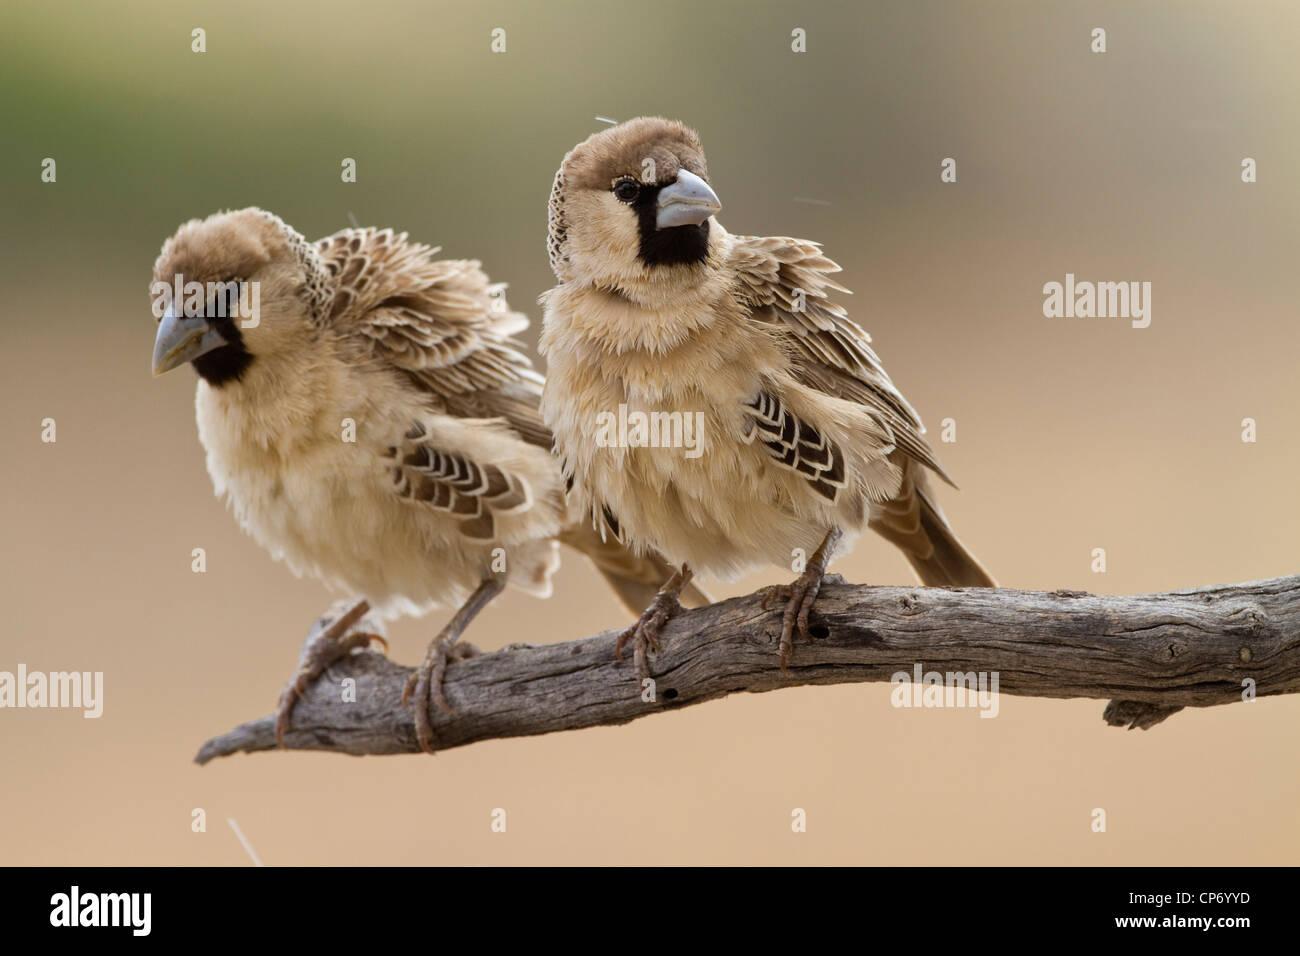 Two sociable weaver birds on a branch - Stock Image